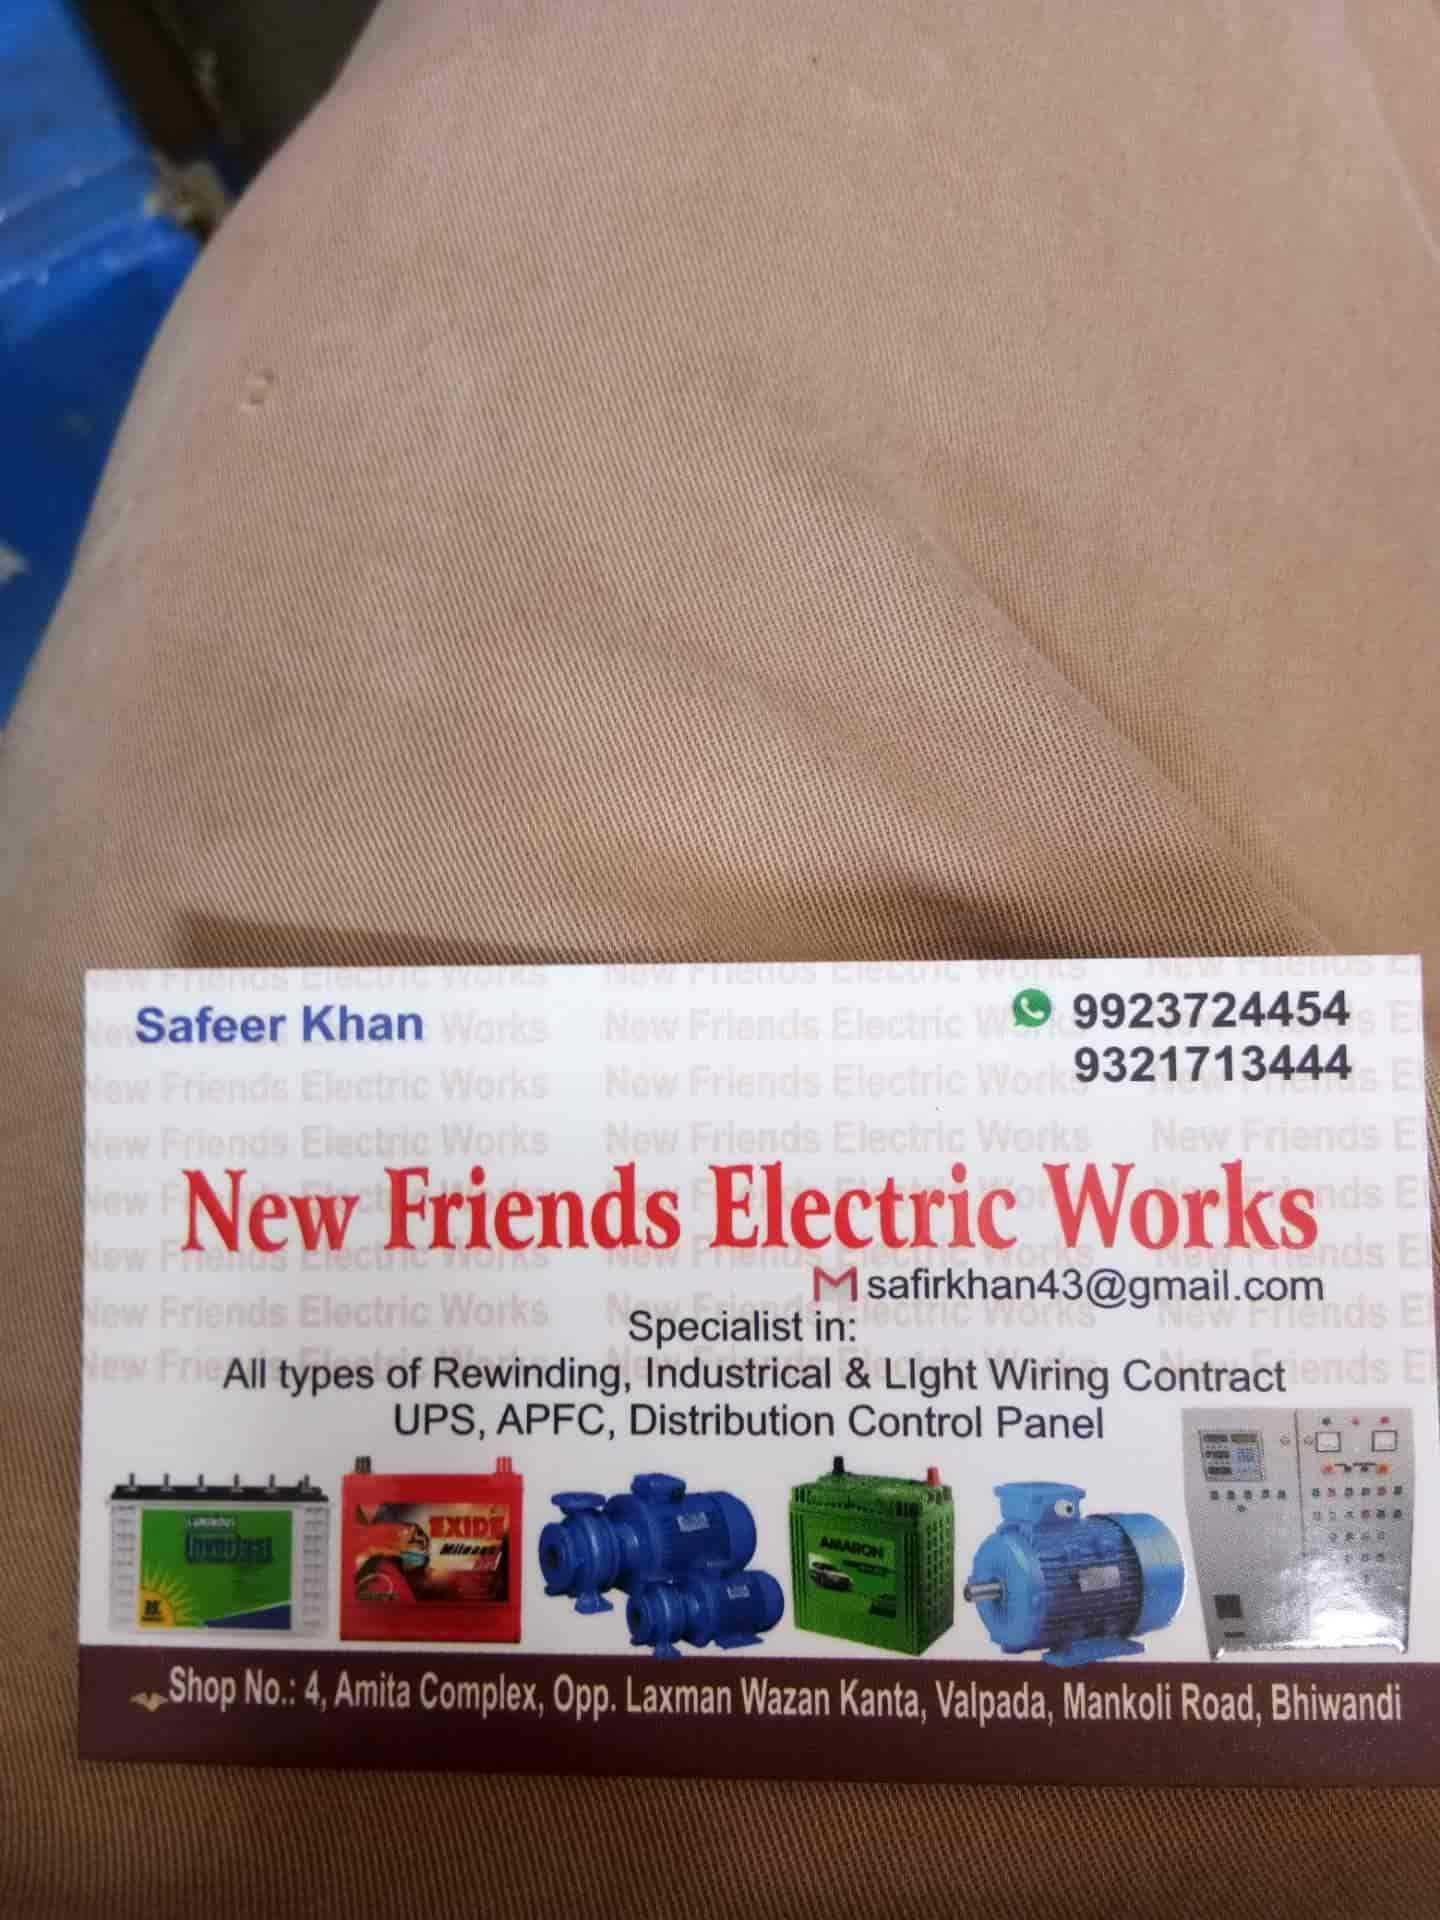 New Friends Electric Work Photos, Bhiwandi, mumbai- Pictures